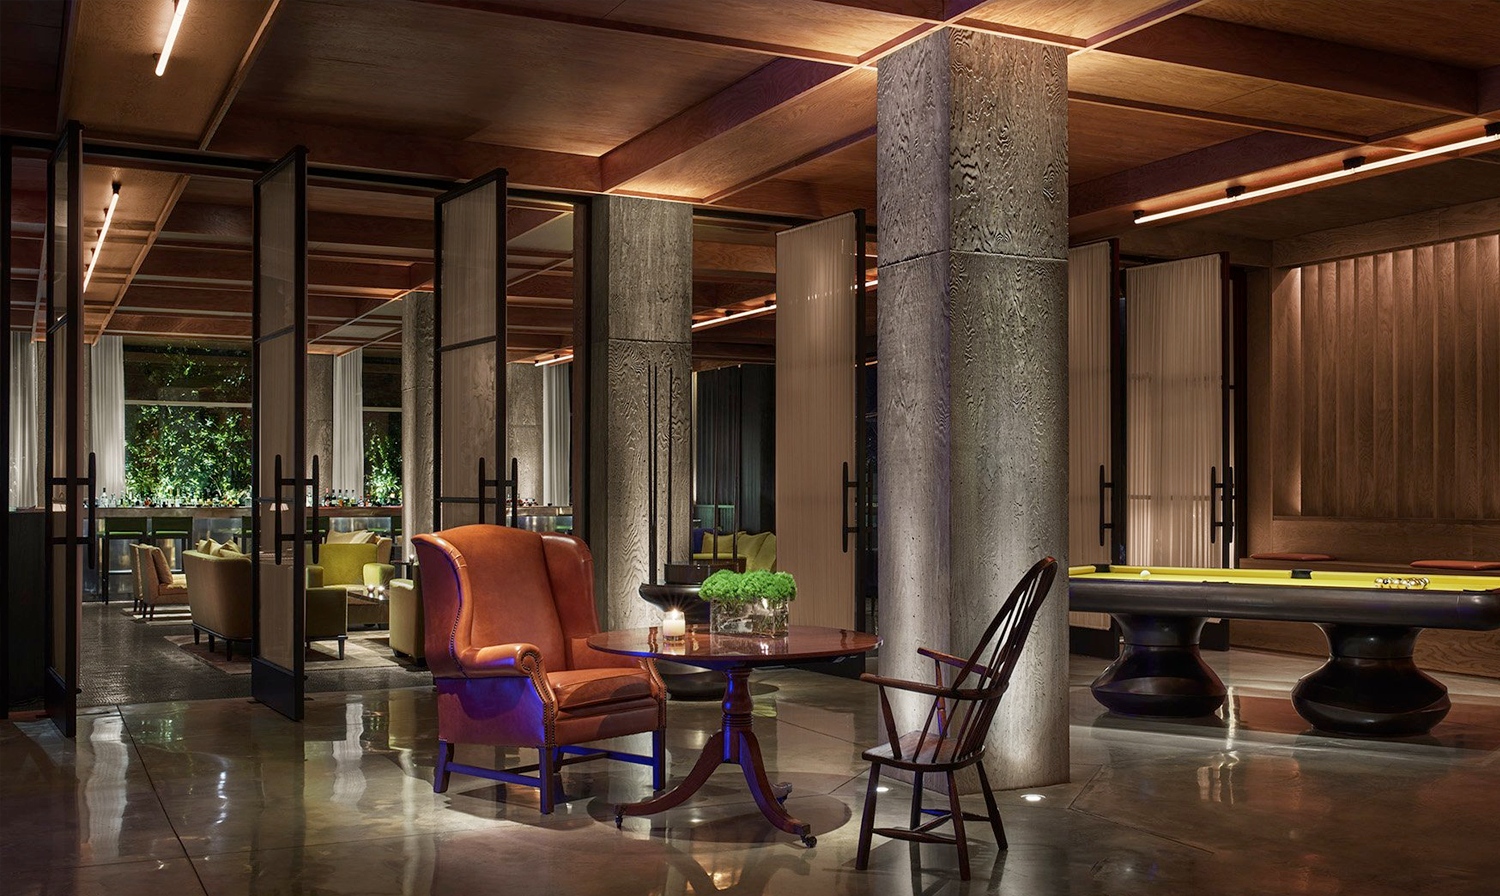 The Public Hotel New York from Ian Schrager